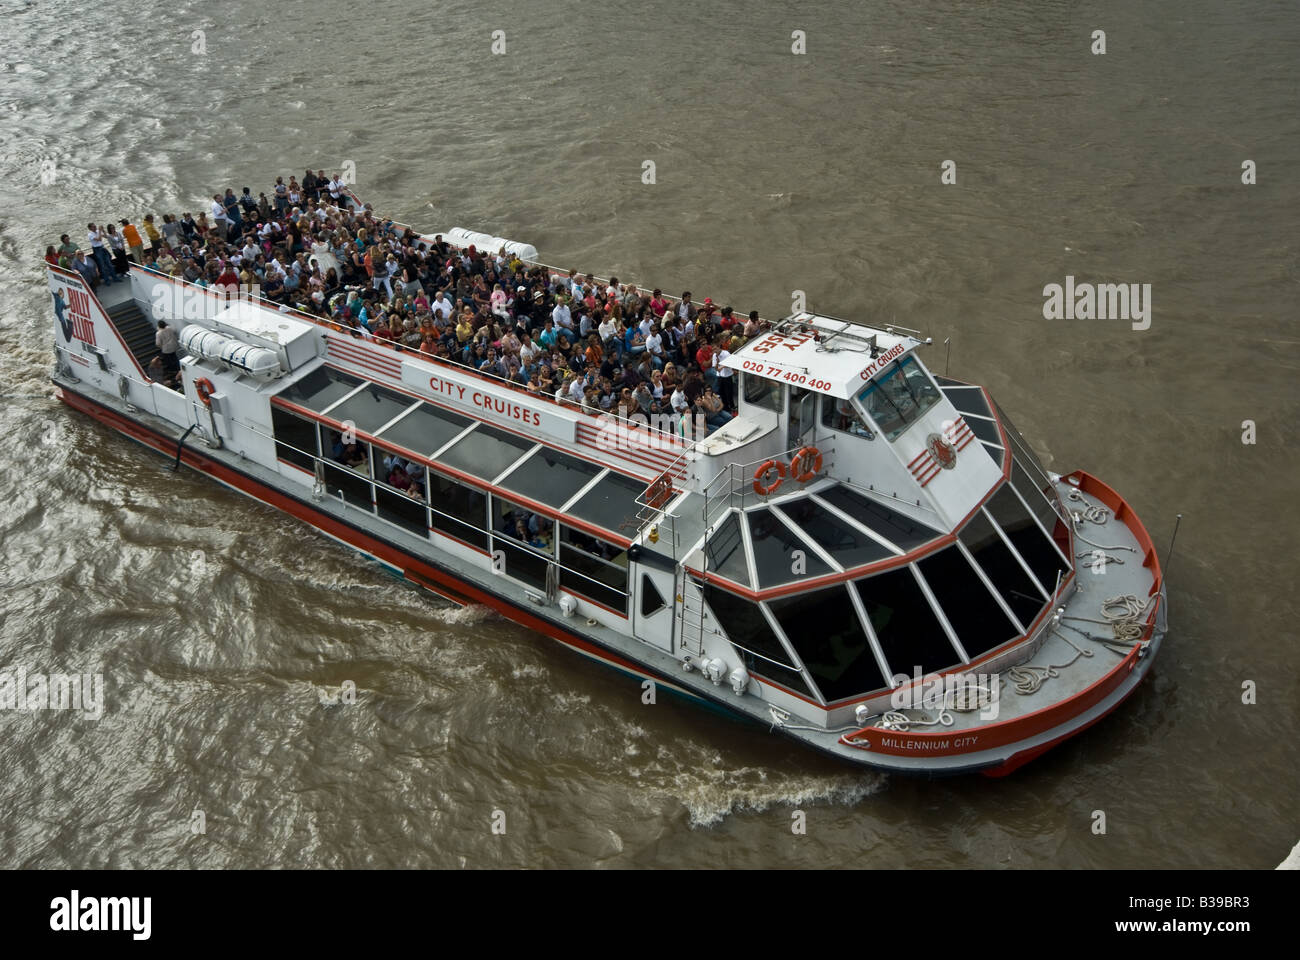 TOURISTS CRUSIE ON RIVER THAMES - Stock Image